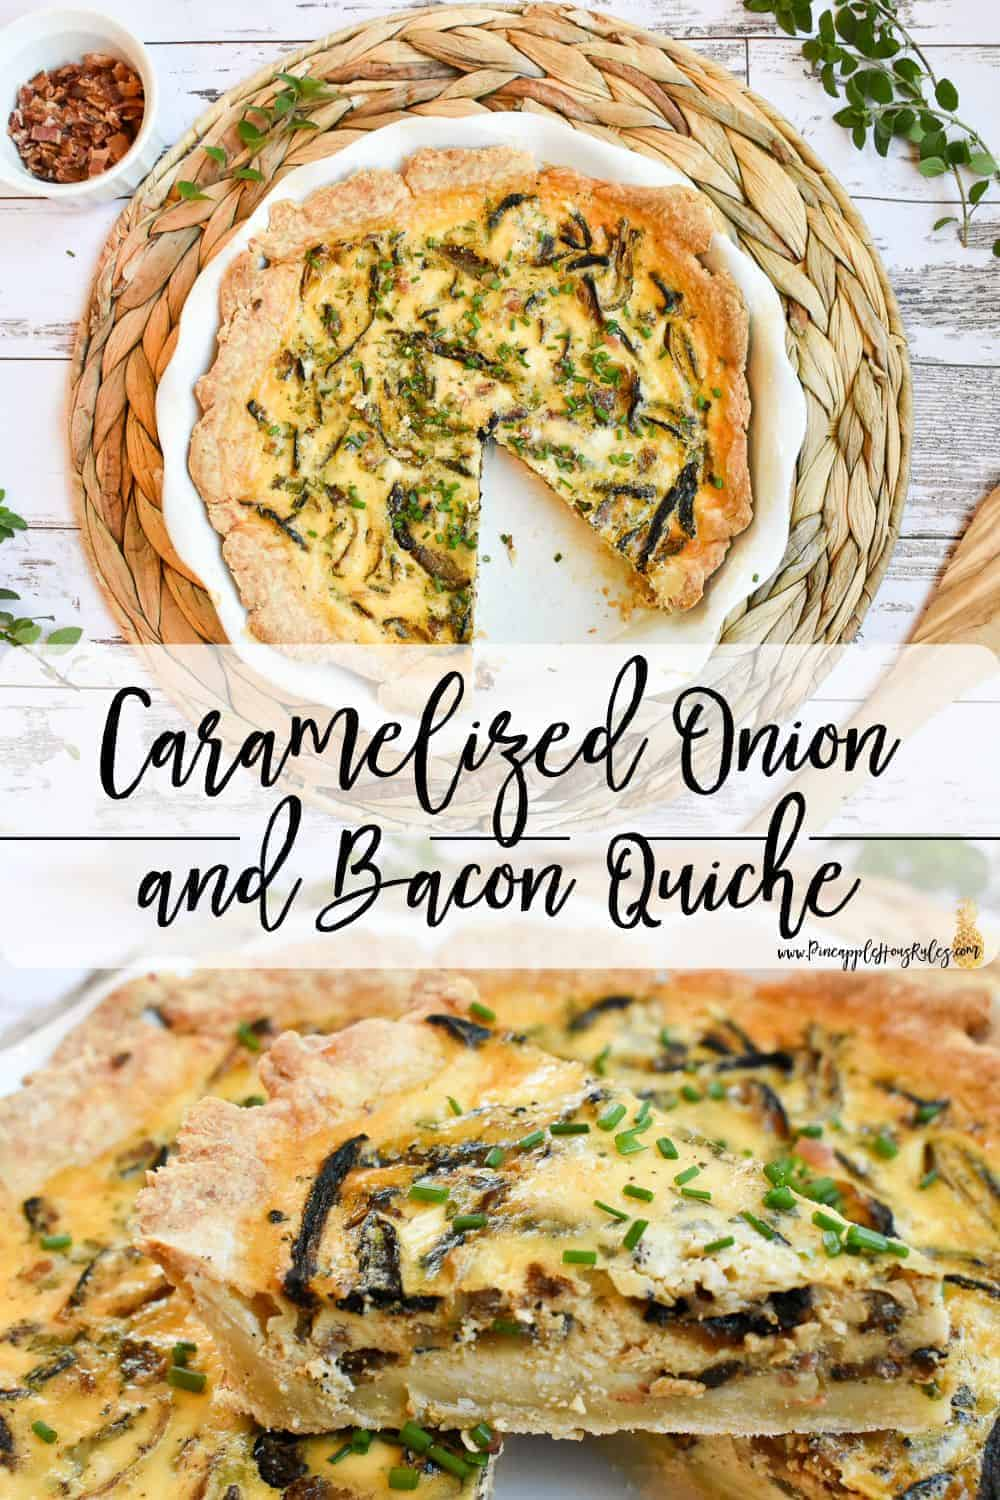 Caramelized-Onion-and-Bacon-Quiche